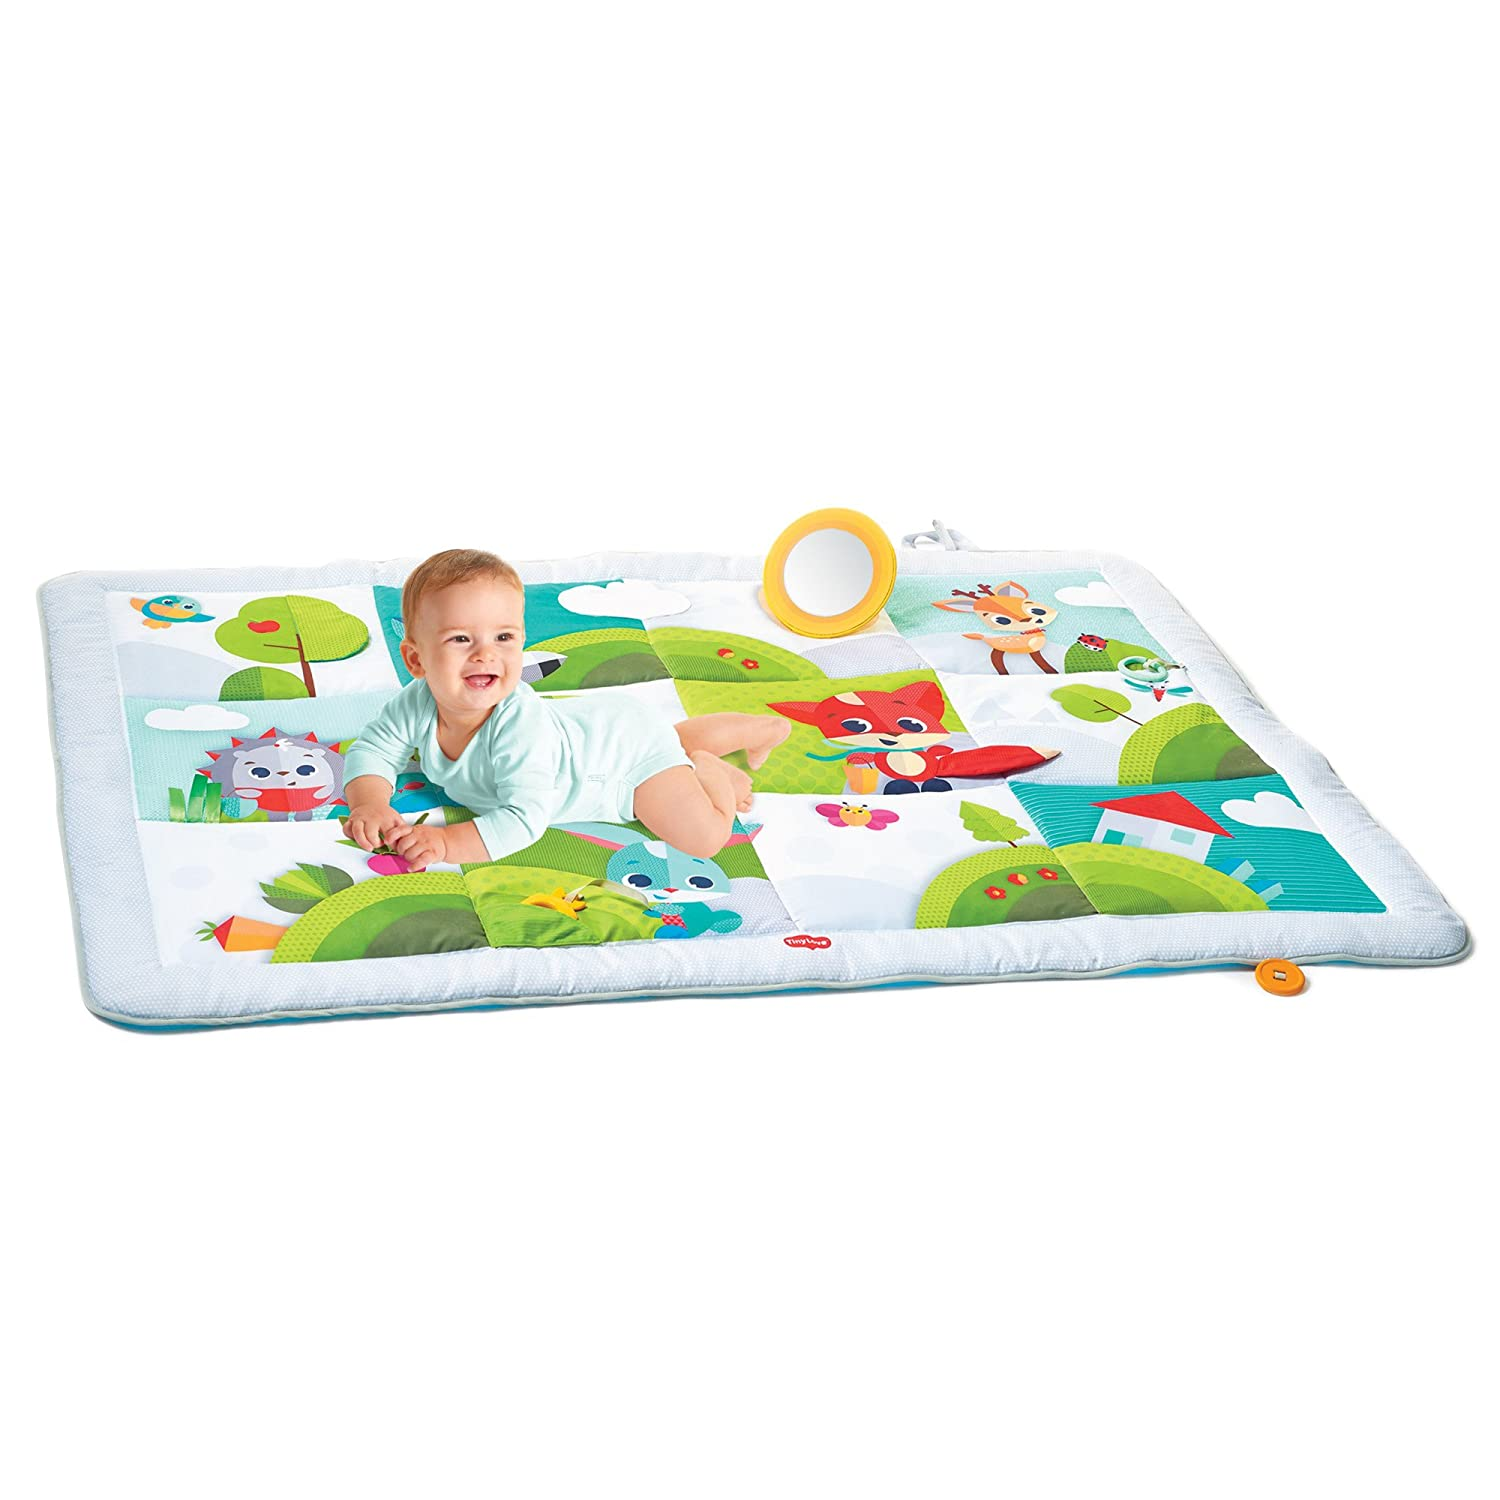 Tiny Love Meadow Days Super Play Mat Dorel Juvenile Group-CA TO026